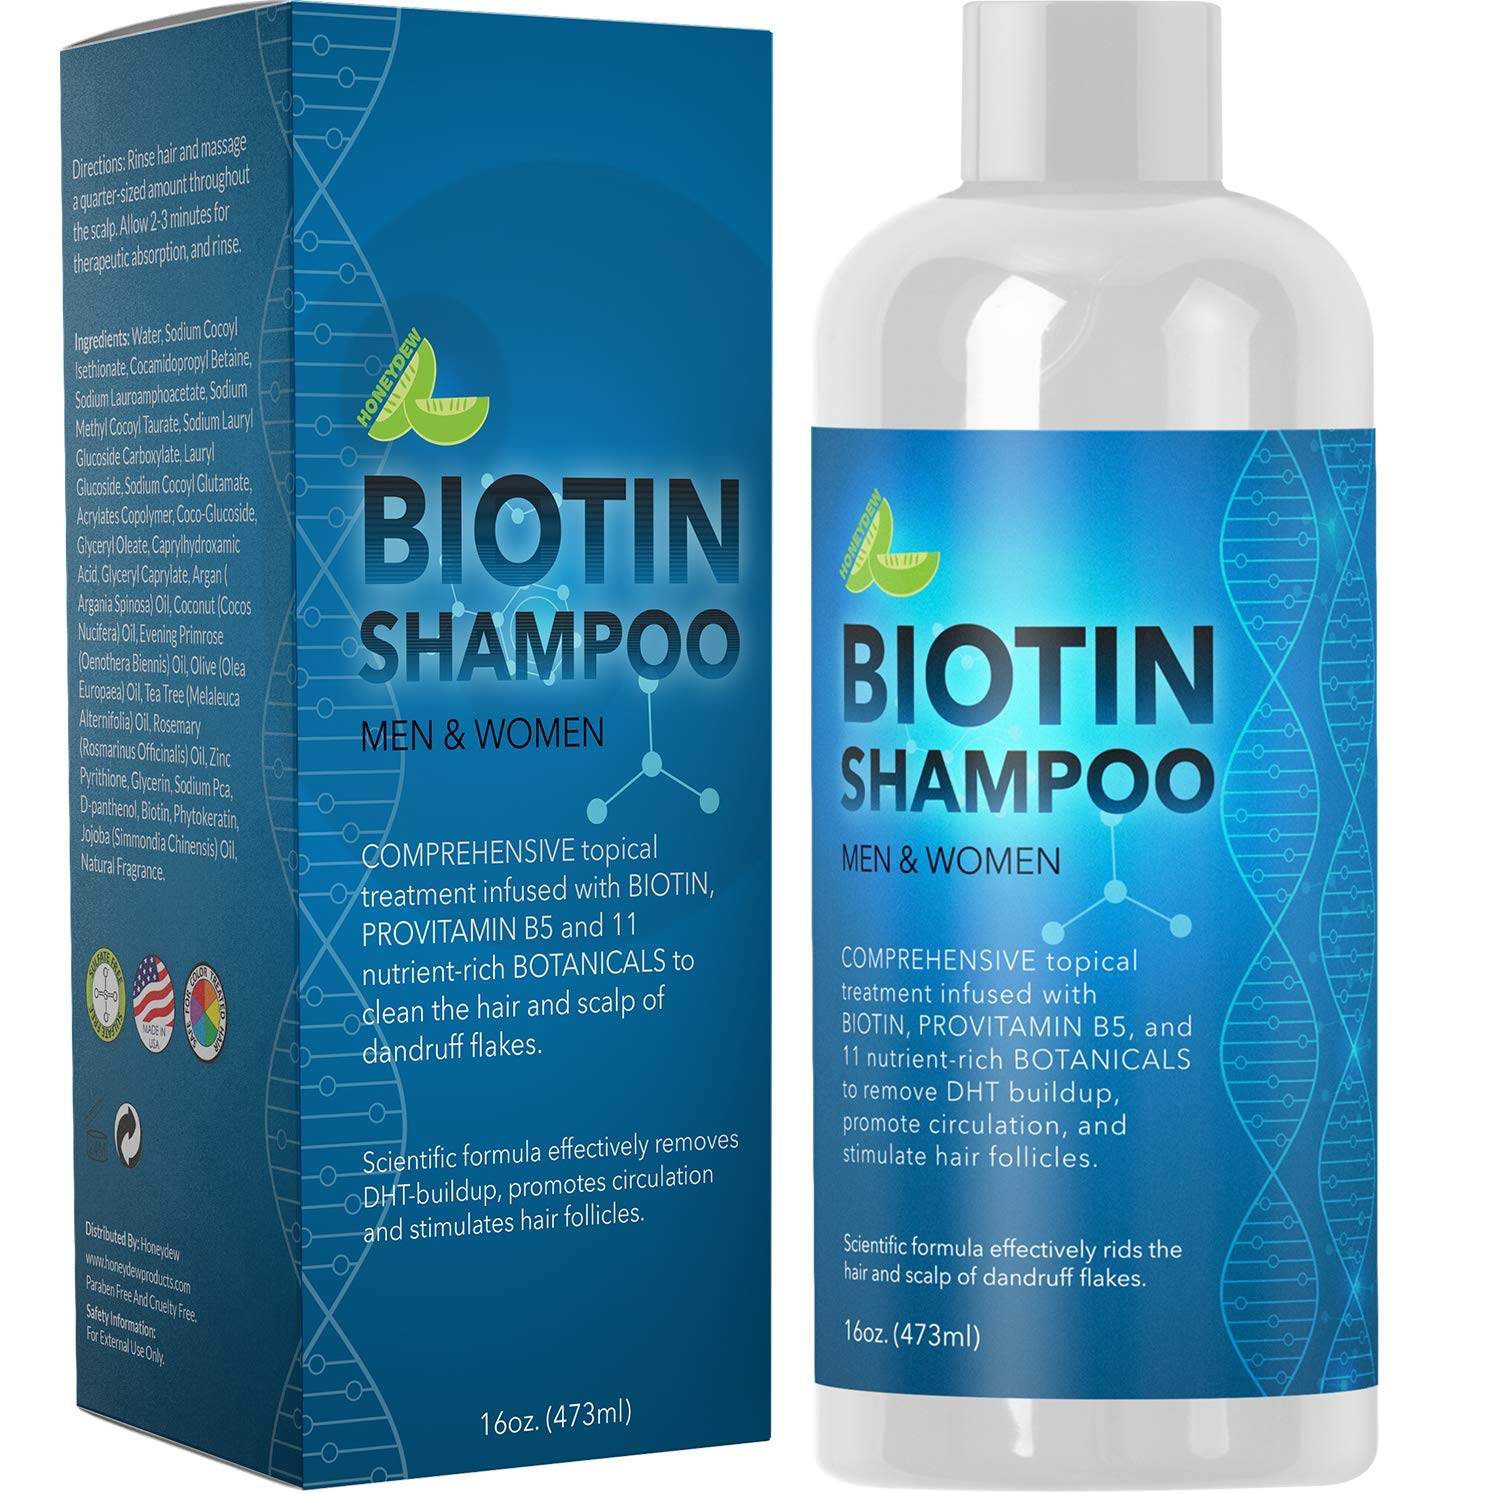 Biotin Shampoo for Hair Growth and Volume - Hair Loss for Men and Women - Natural DHT Blocker - Thickening Shampoo for Fine Hair - Pure Anti Dandruff Oils - Sulfate Free for Color Treated Hair - 16 oz by Maple Holistics (Image #1)